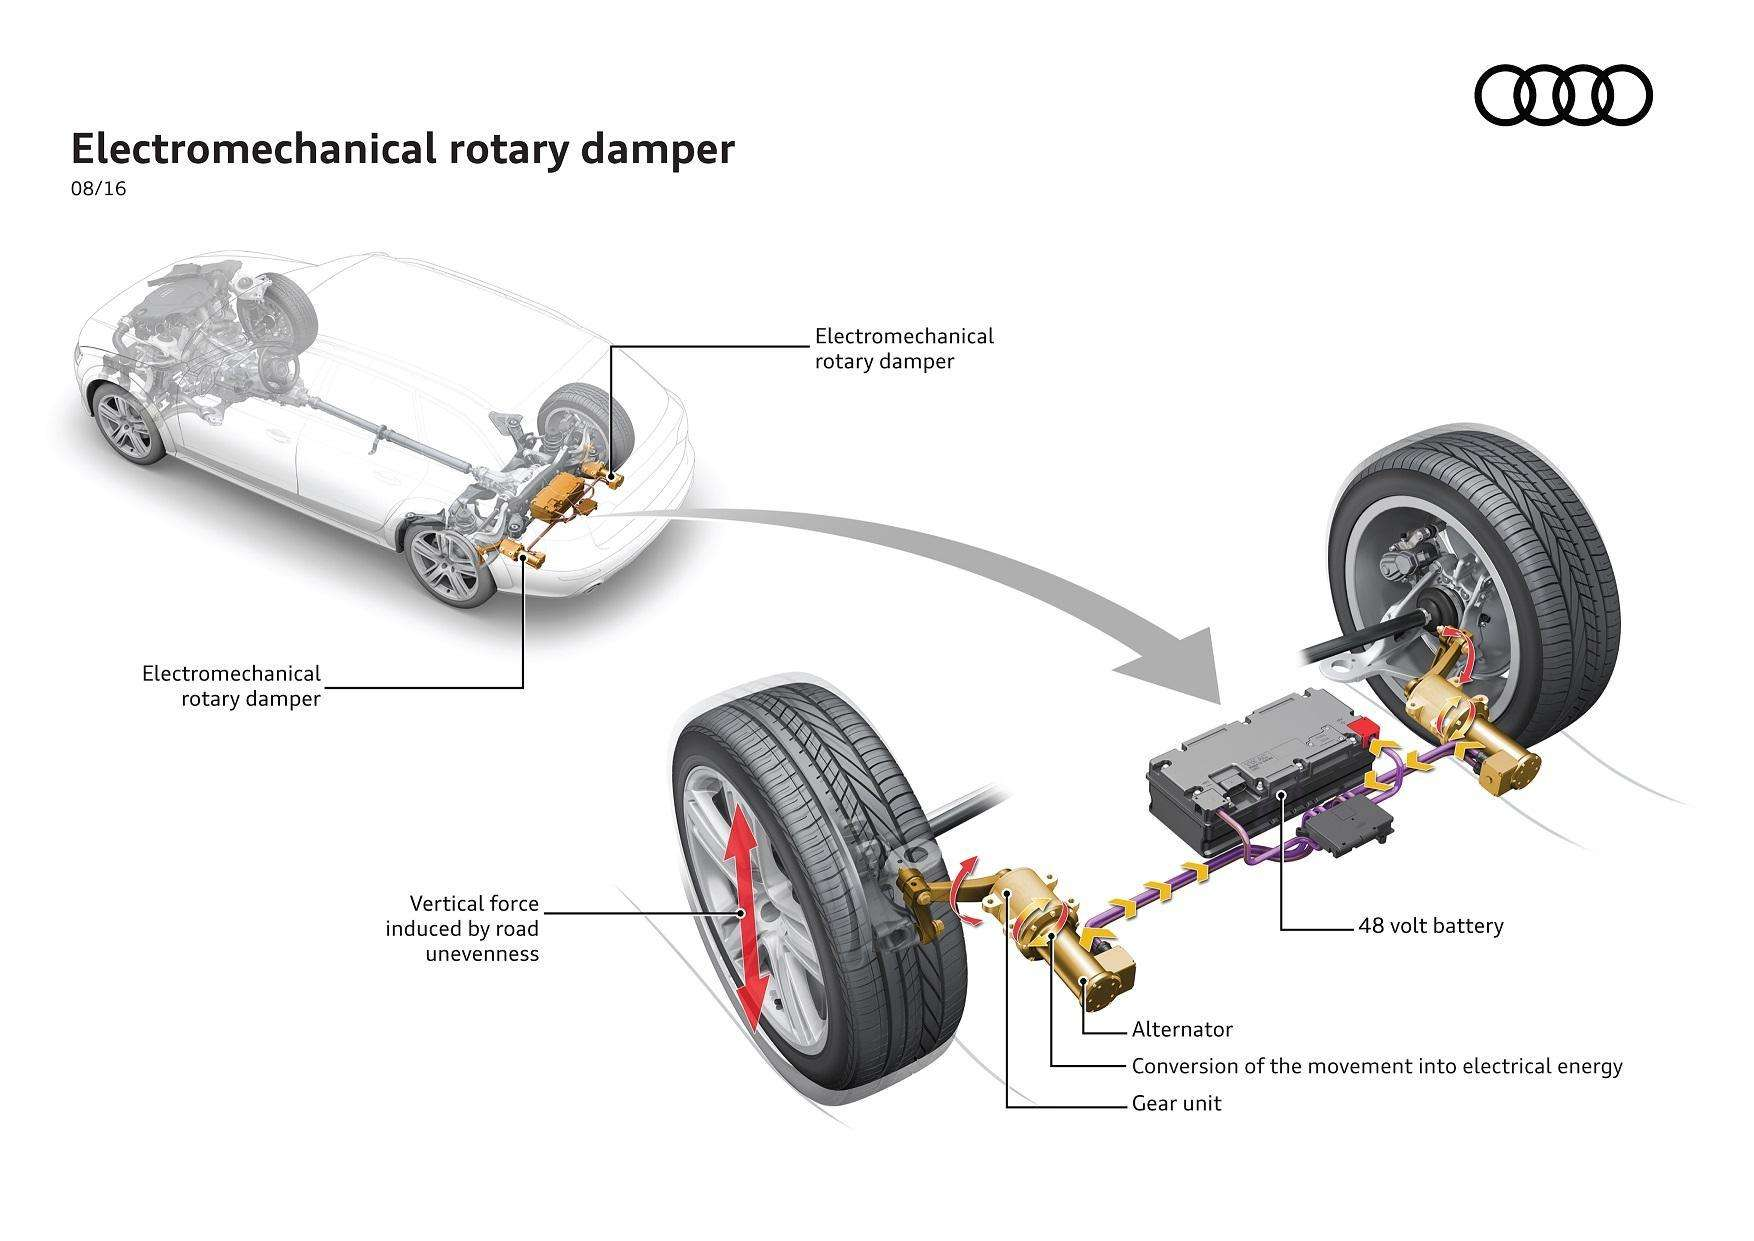 Electromechanical rotary damper